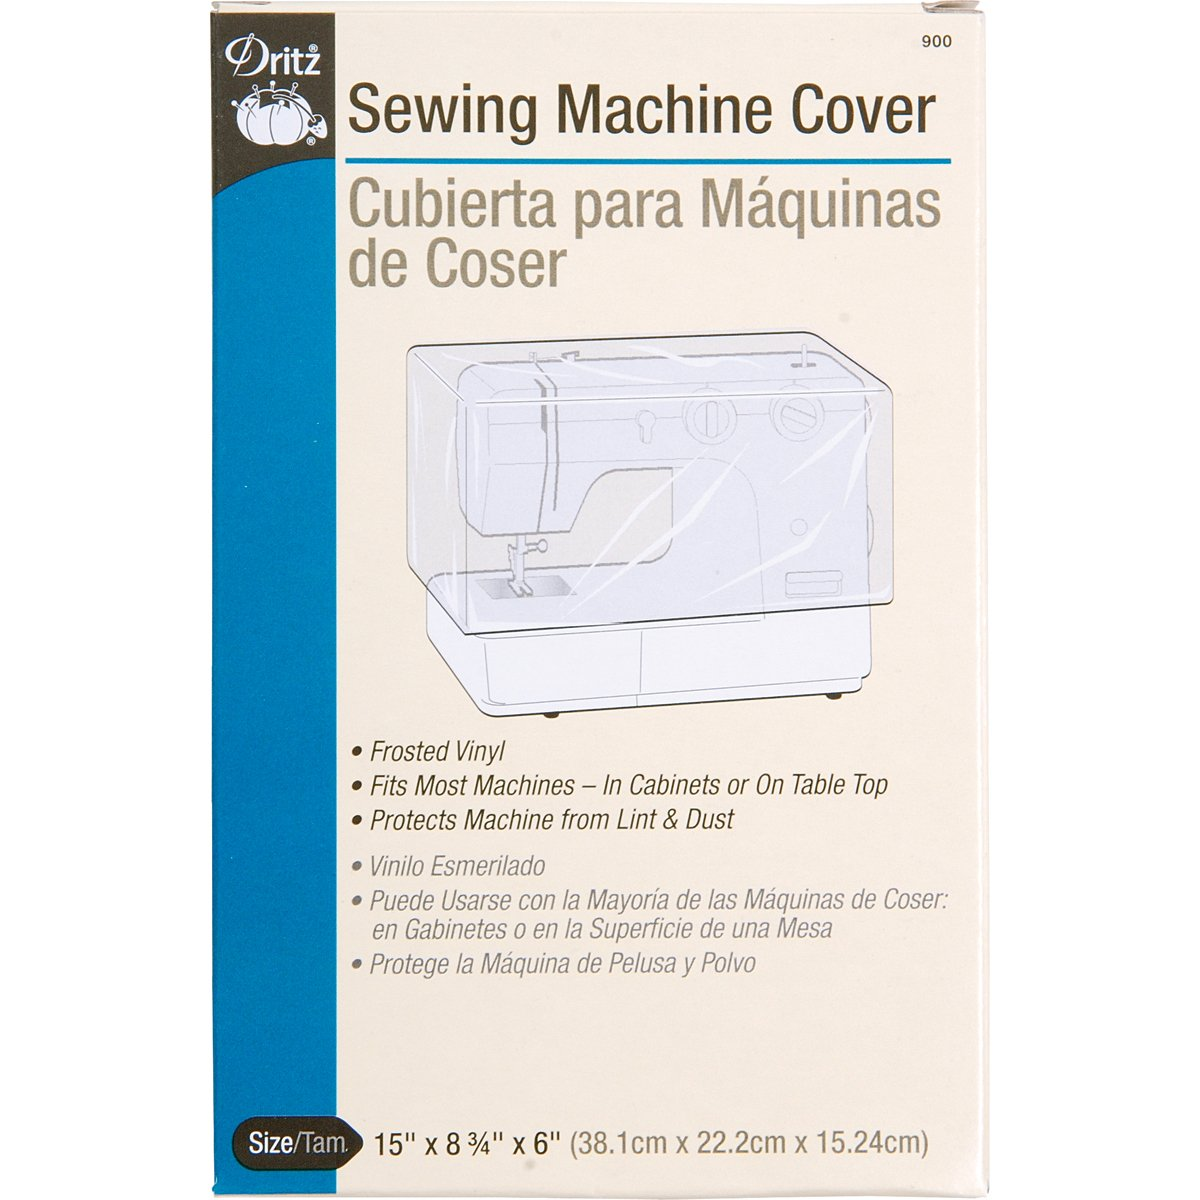 Dritz Vinyl Sewing Machine Cover-15-Inchx8.75-Inchx6-Inch Frosted 900